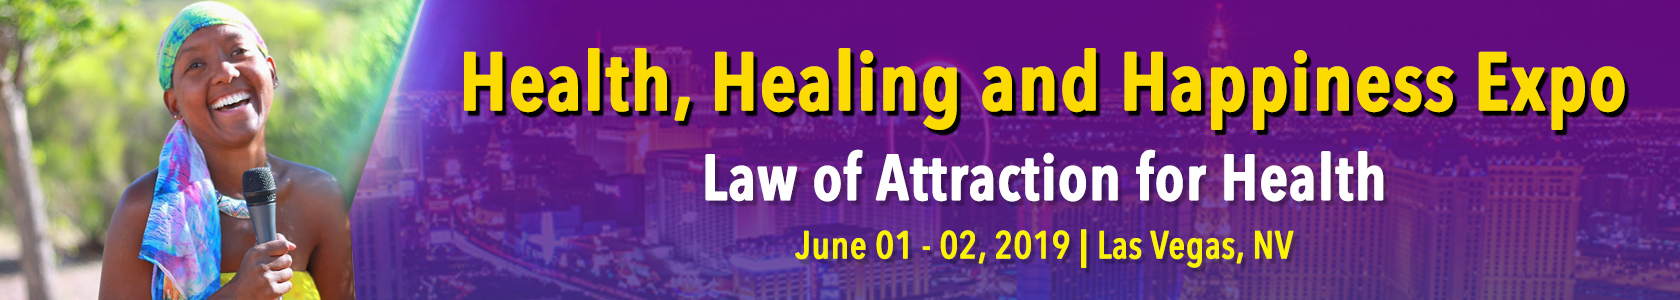 Health, Healing and Happiness Expo 2019